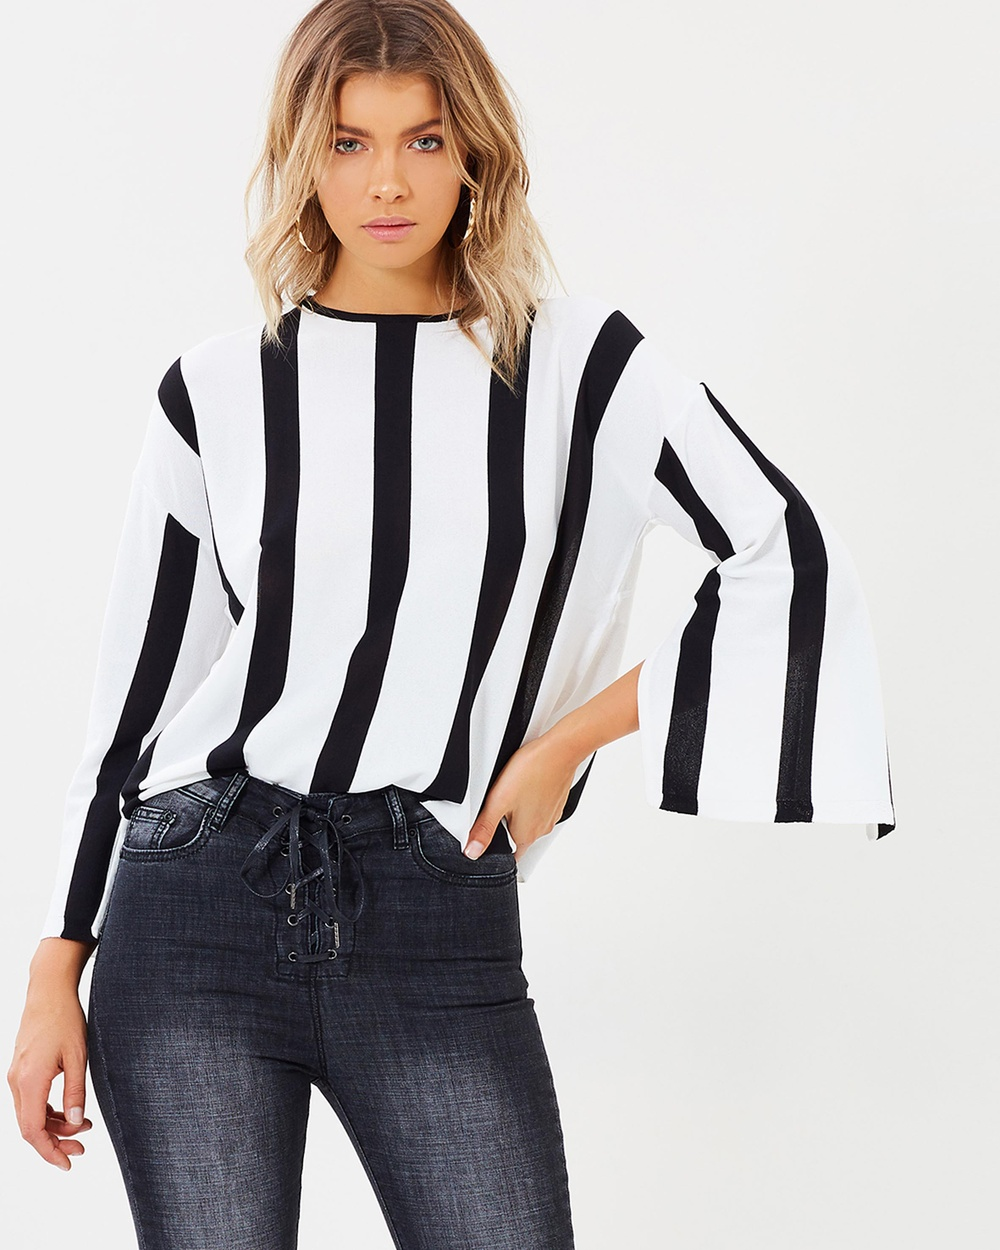 Atmos & Here ICONIC EXCLUSIVE Mahlia Stripe Knit Top Tops Black & White ICONIC EXCLUSIVE Mahlia Stripe Knit Top